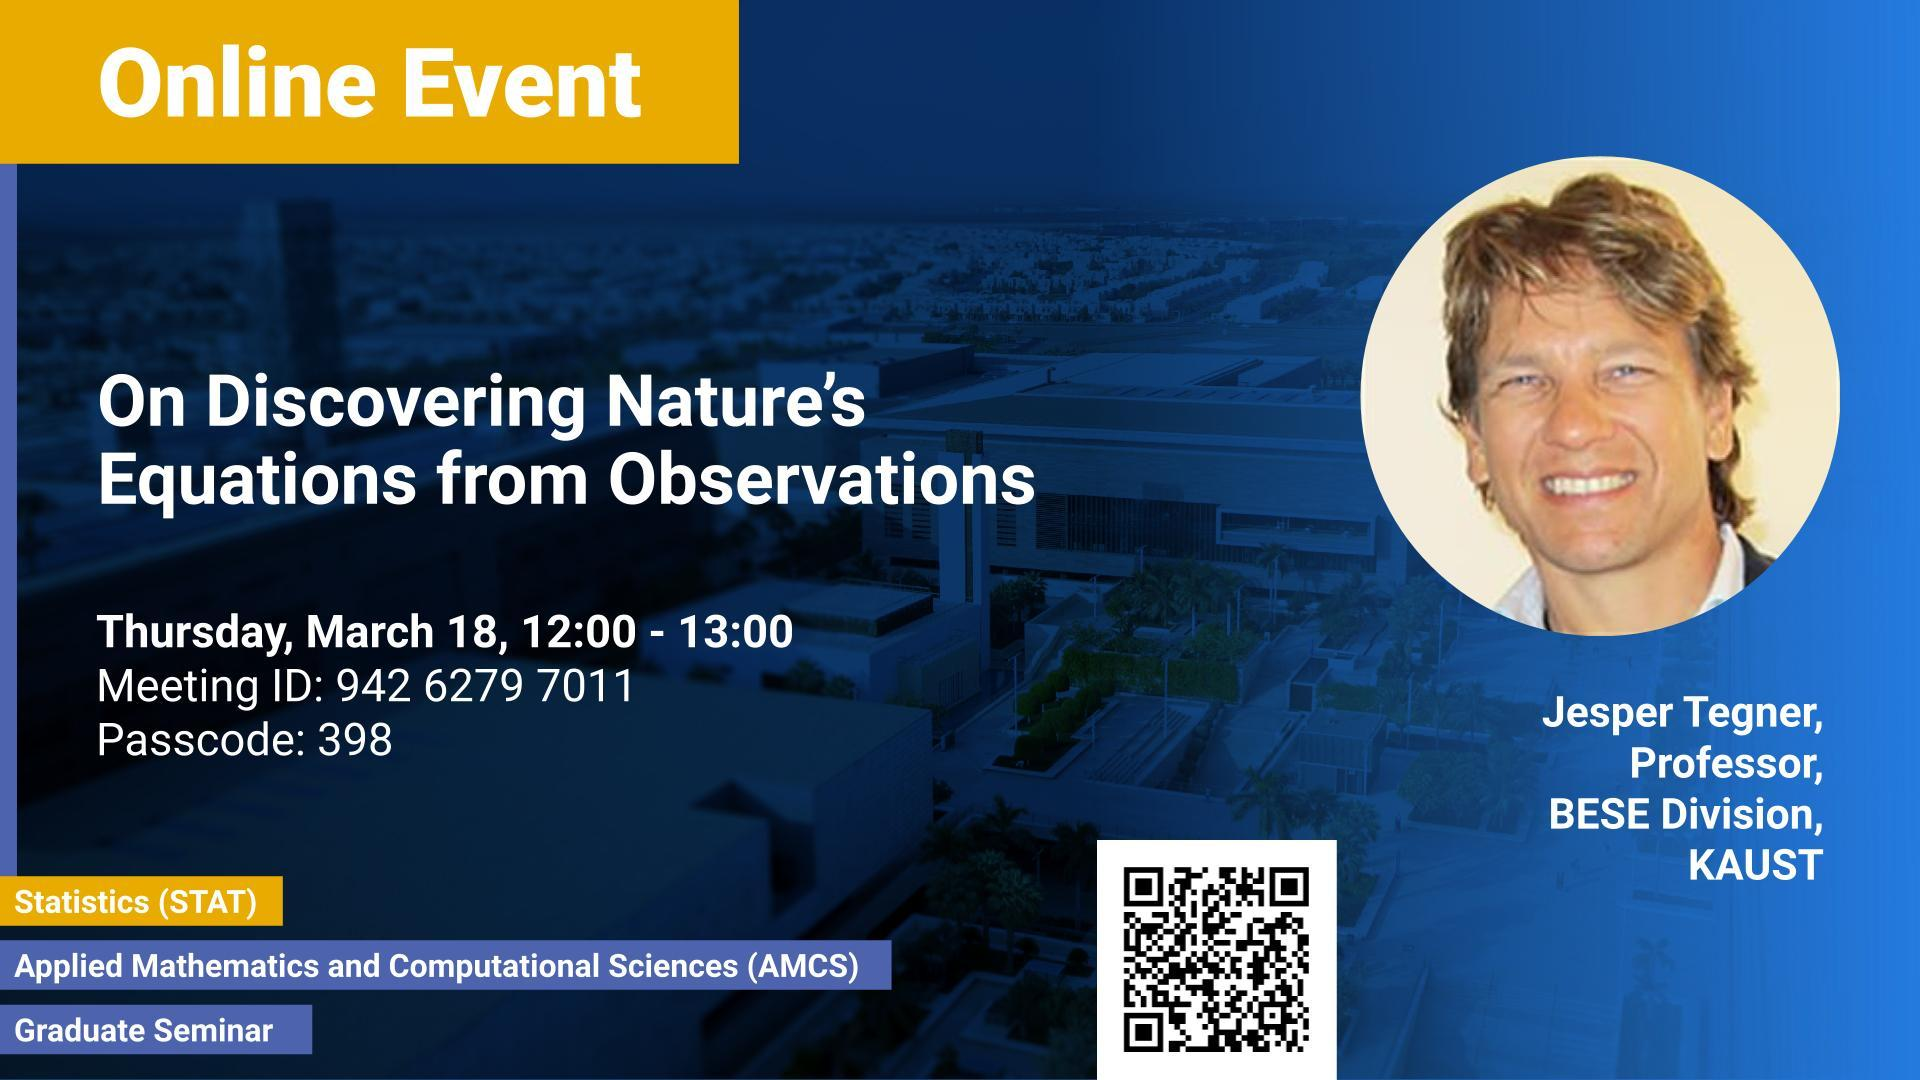 KAUST CEMSE AMCS STAT Graduate Seminar Jesper Tegner On Discovering Nature's Equations from Observations